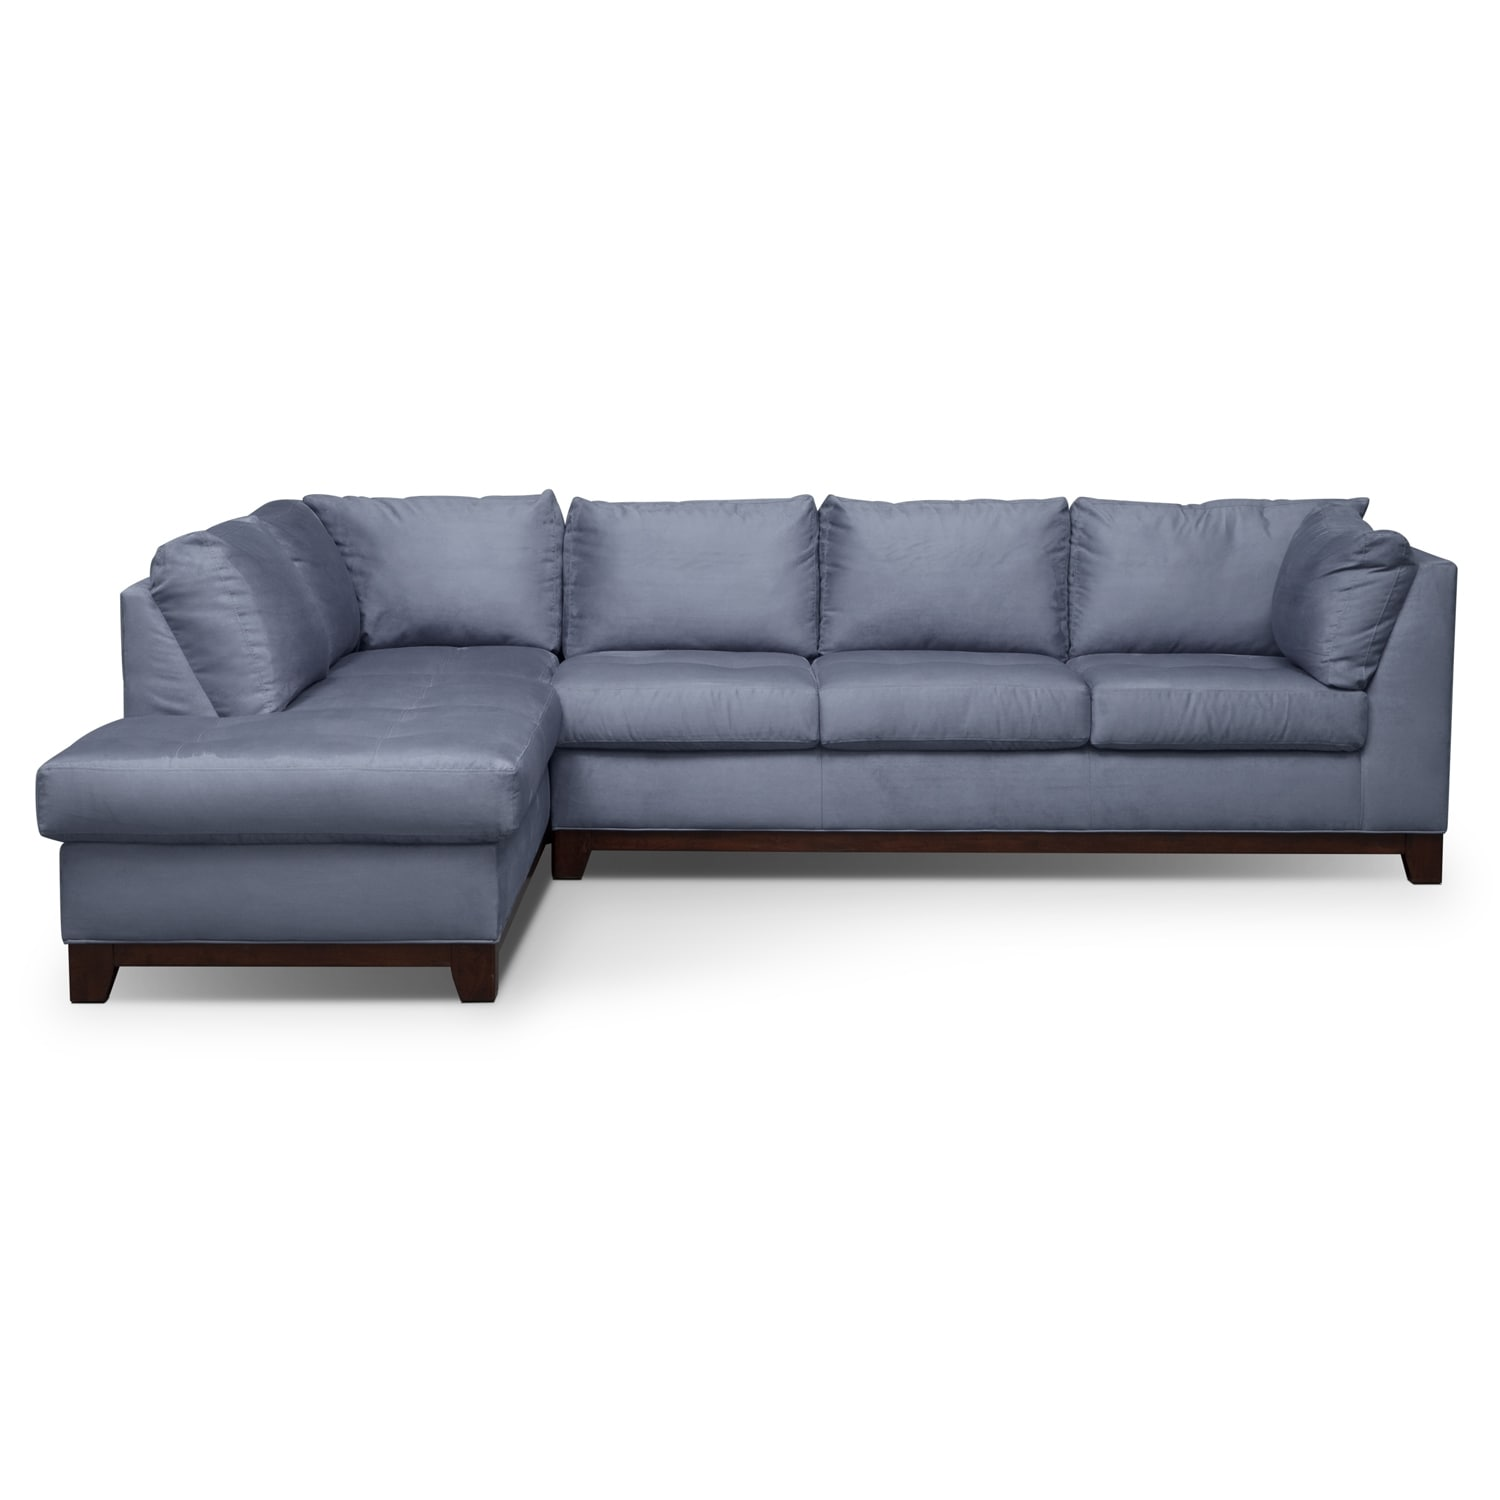 Soho iv 2 pc sectional reverse value city furniture for American signature furniture commercial chaise